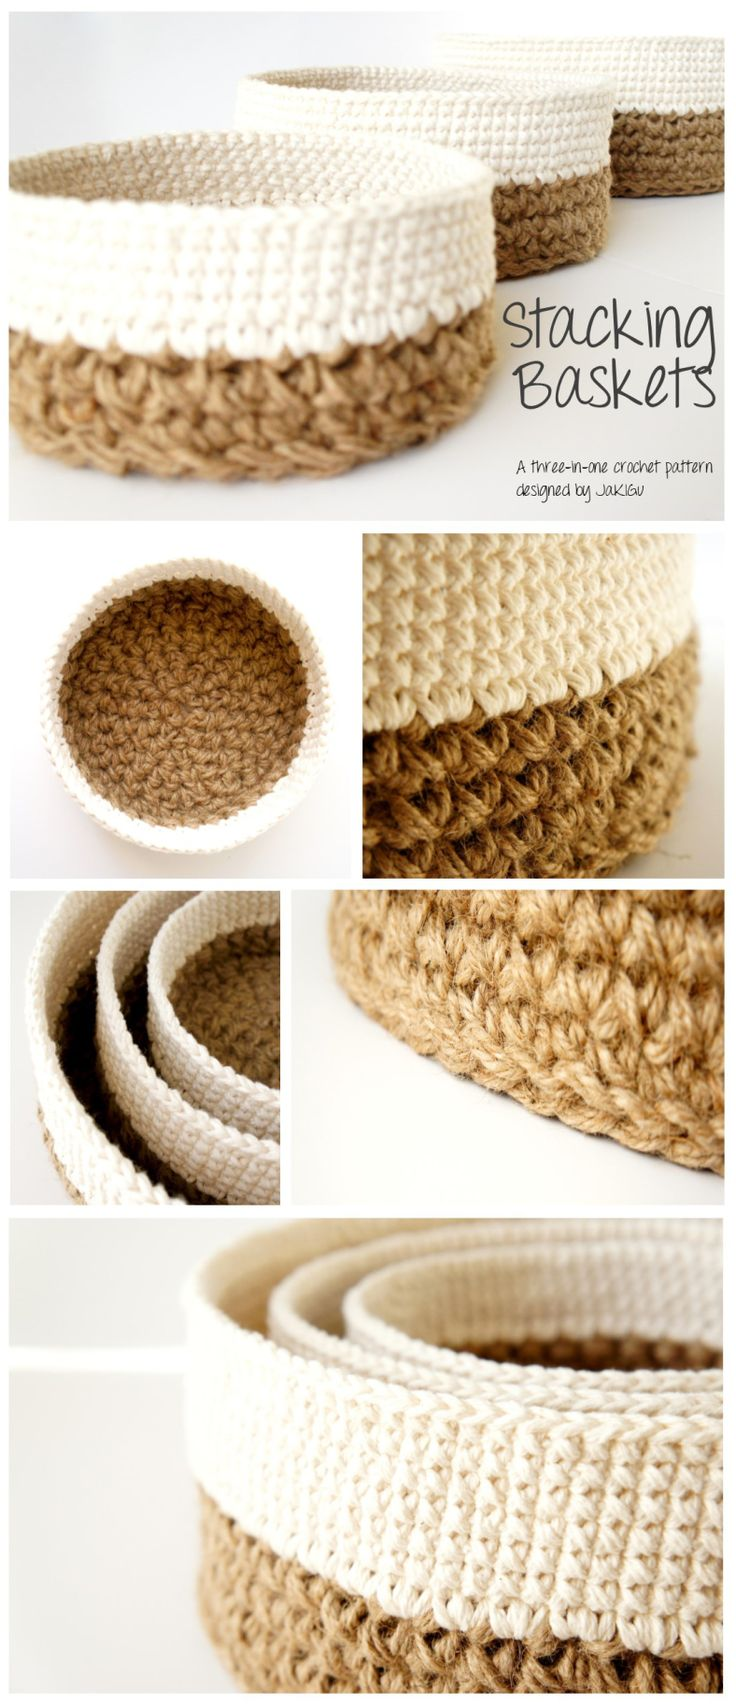 Stacking Baskets - Rustic Home Decor - Jute and Cotton Nesting Bowls - Crochet Pattern